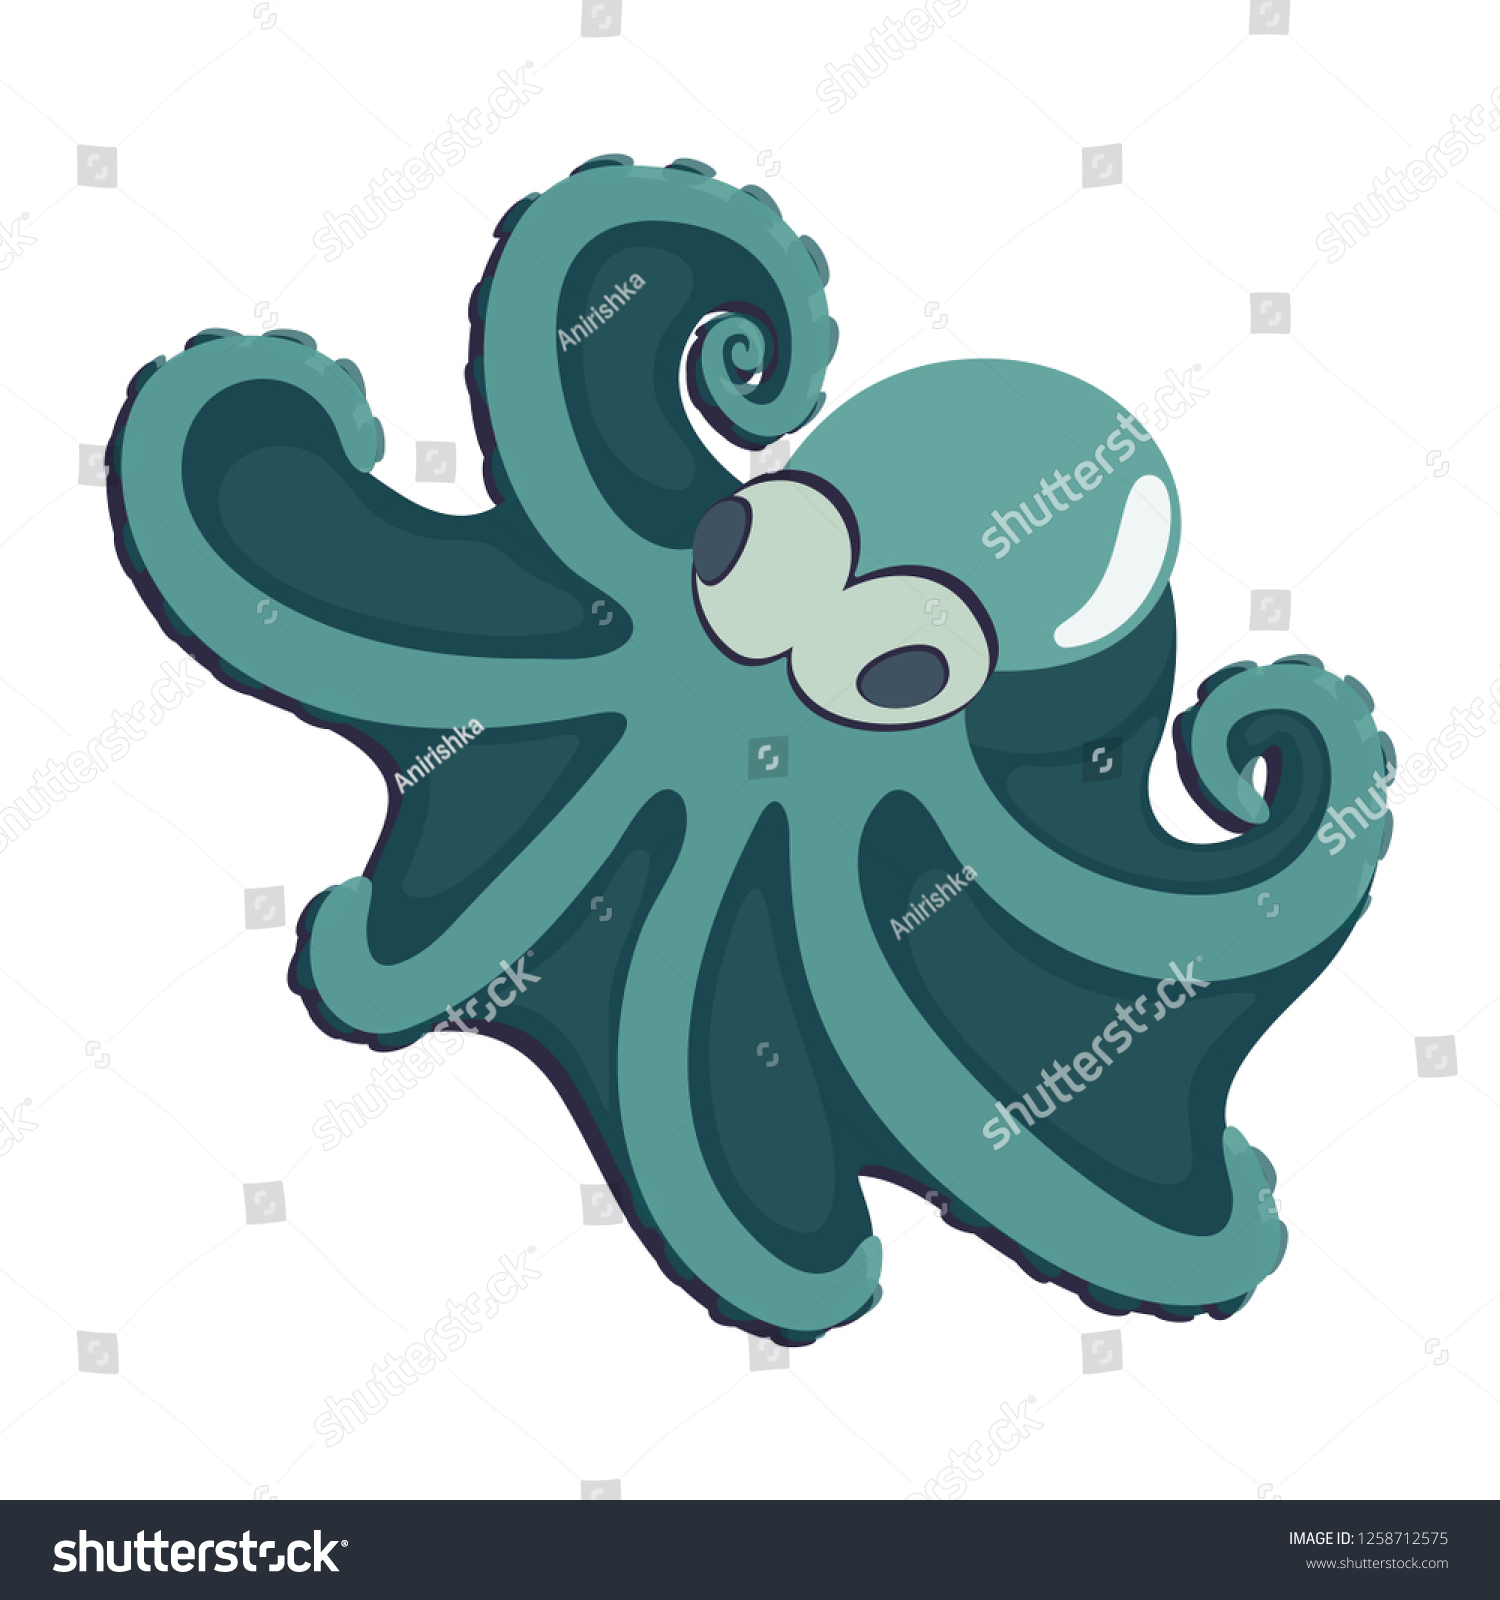 hight resolution of caribbean reef octopus clipart of cartoon octopus on white background cool cartoon character design animal vector illustration for zoo ad nature concept